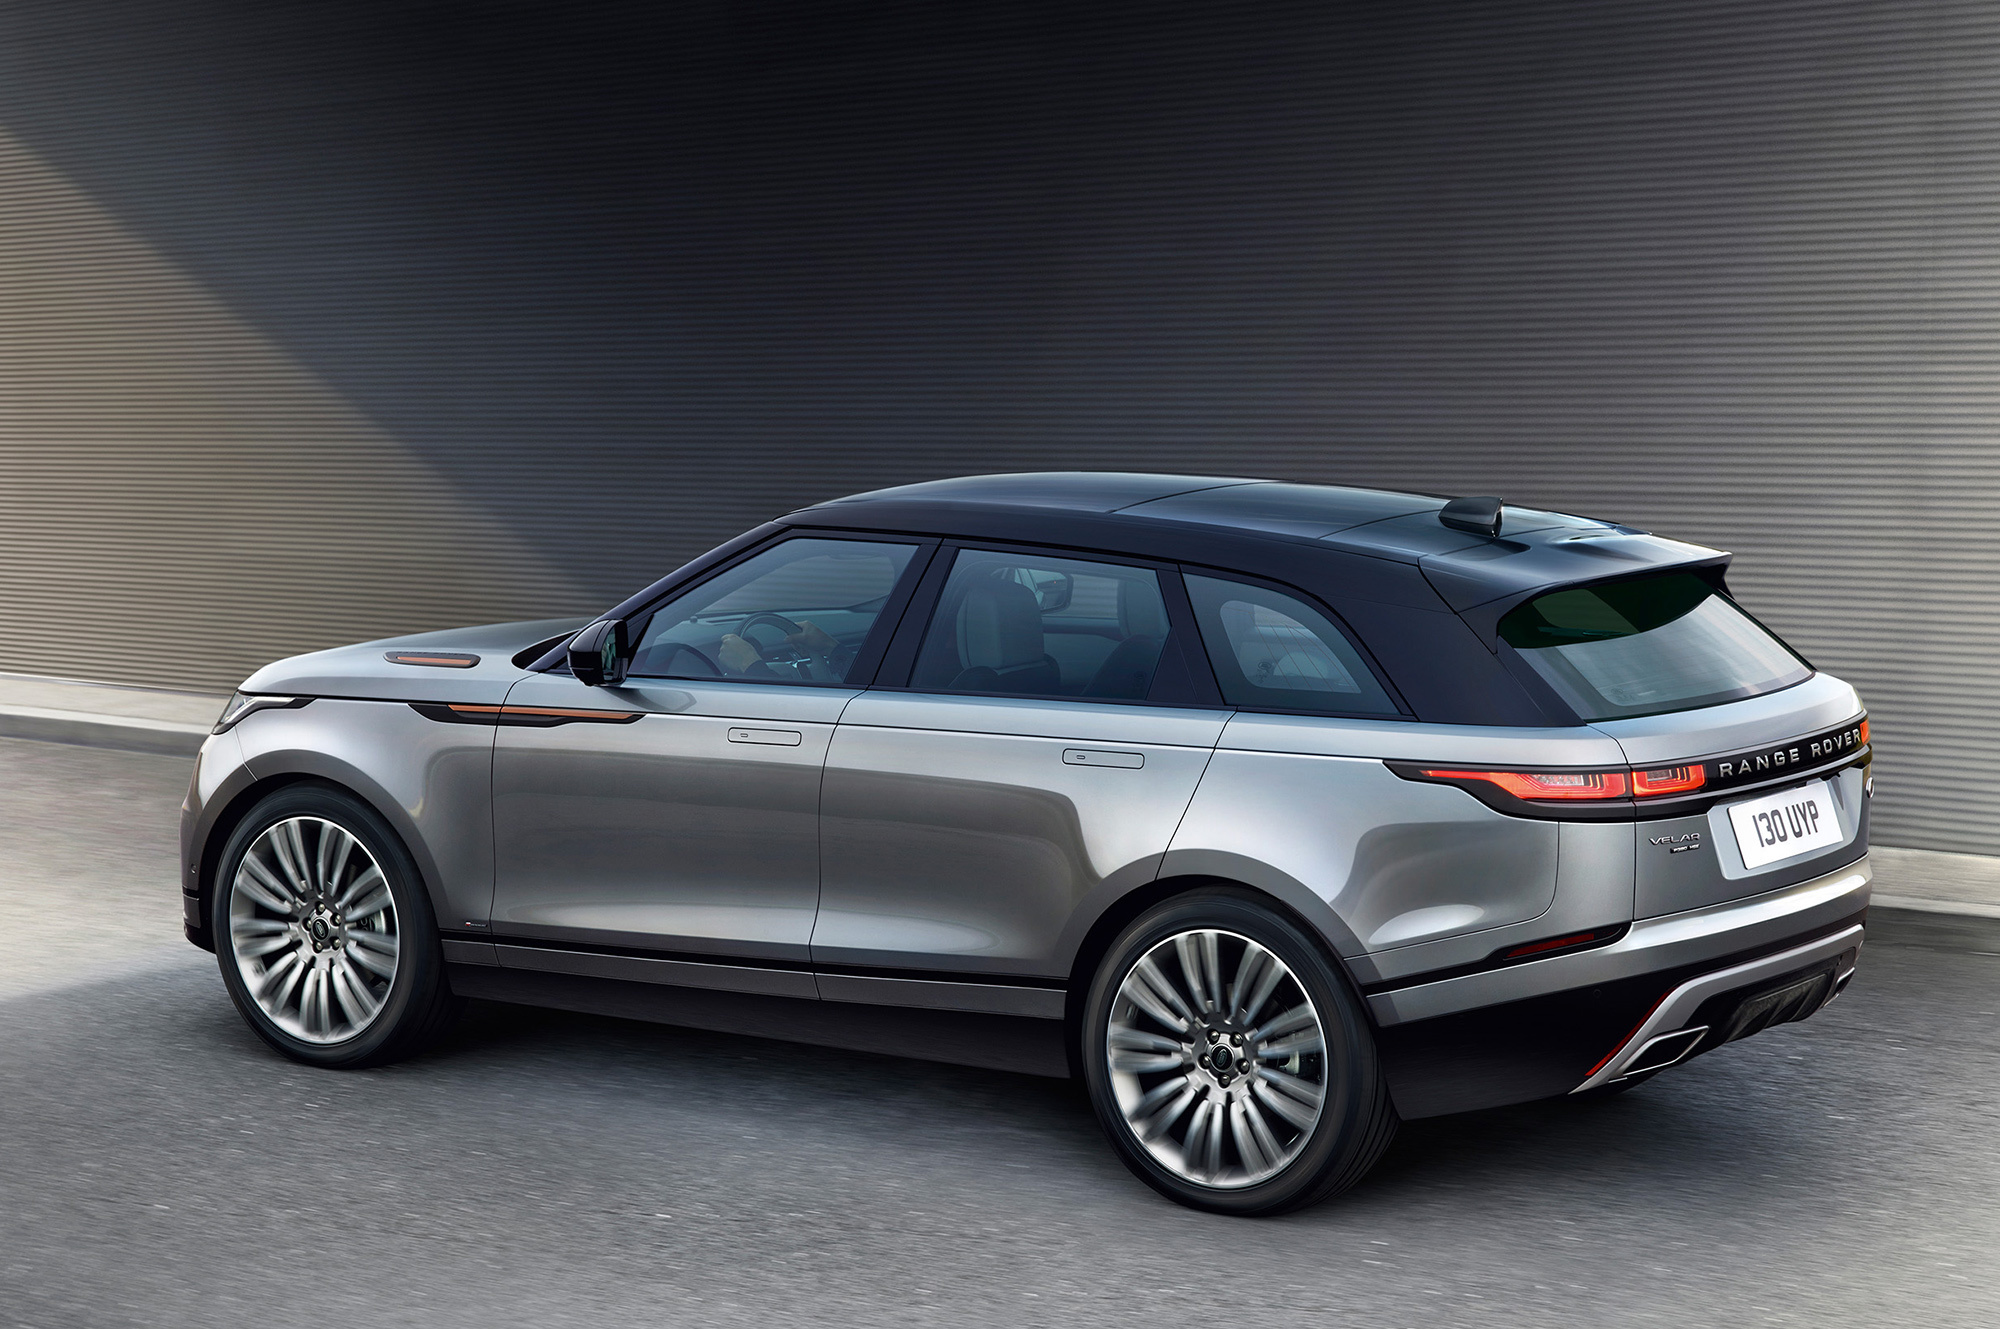 Range Rover Velar HD Wallpaper